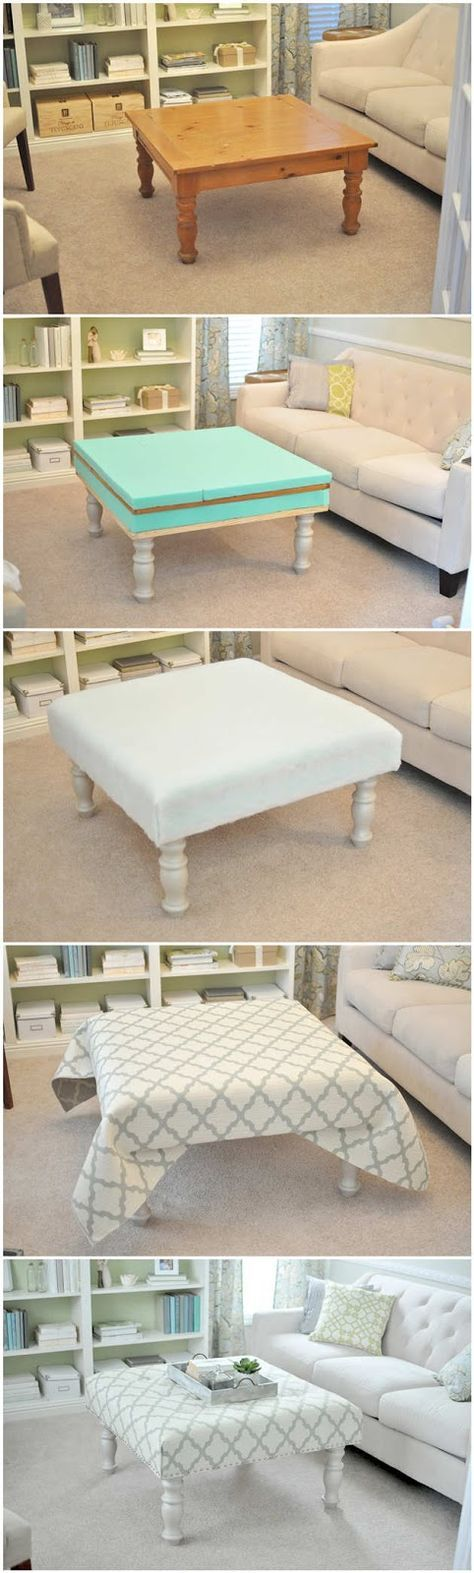 Best 25 ottoman bed ideas on pinterest small beds for Diy ottoman bed frame